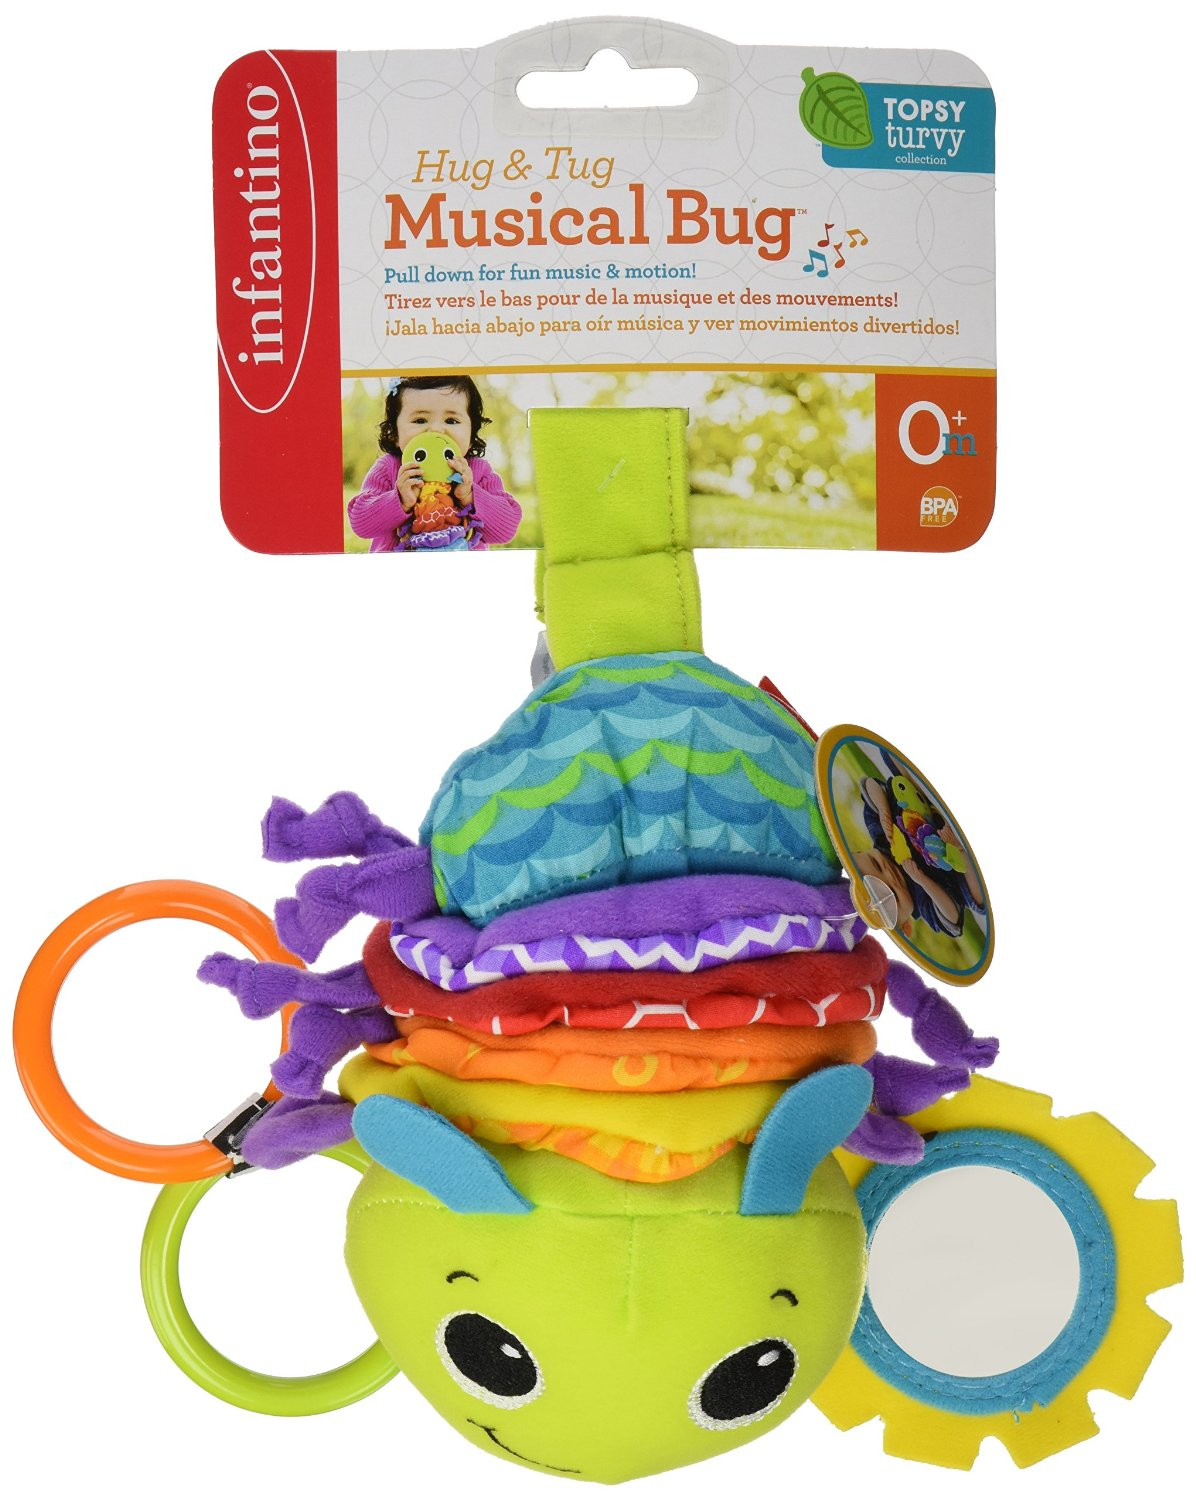 Infantino Twist Caterpillars Sound Hanging Baby Rattles With Teethers Multifunction Bed Car Hang Toy Musical Bug In Mobiles From Toys